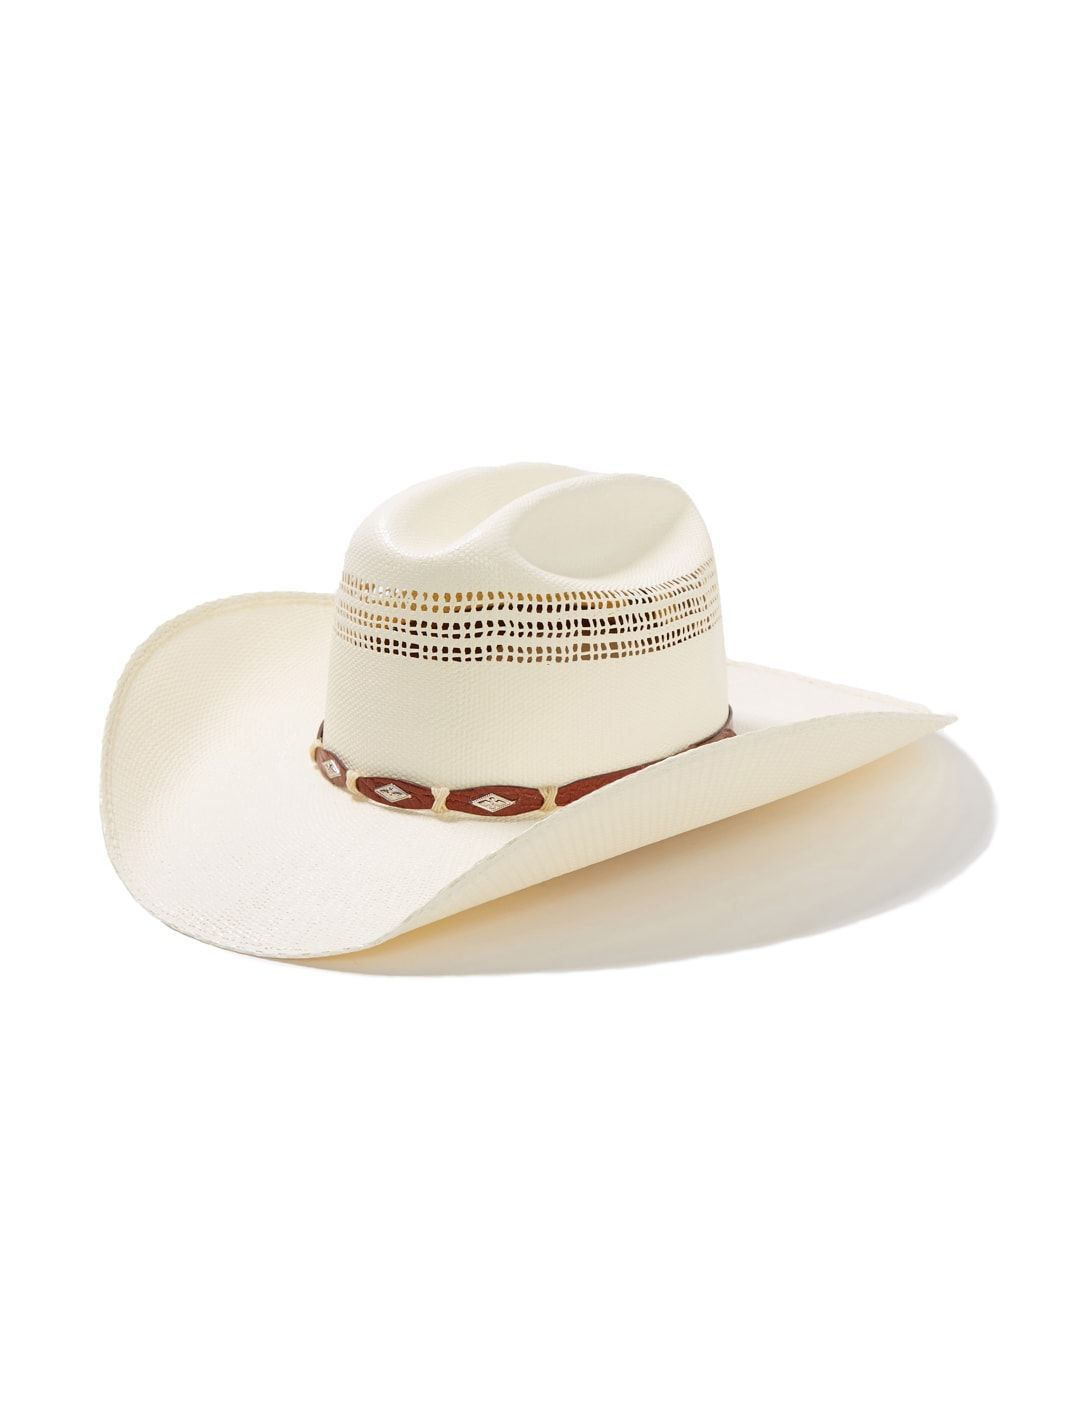 Stetson Men s BILLY STRAW COWBOY HAT SSBLLY7342. Details ce753aff90e